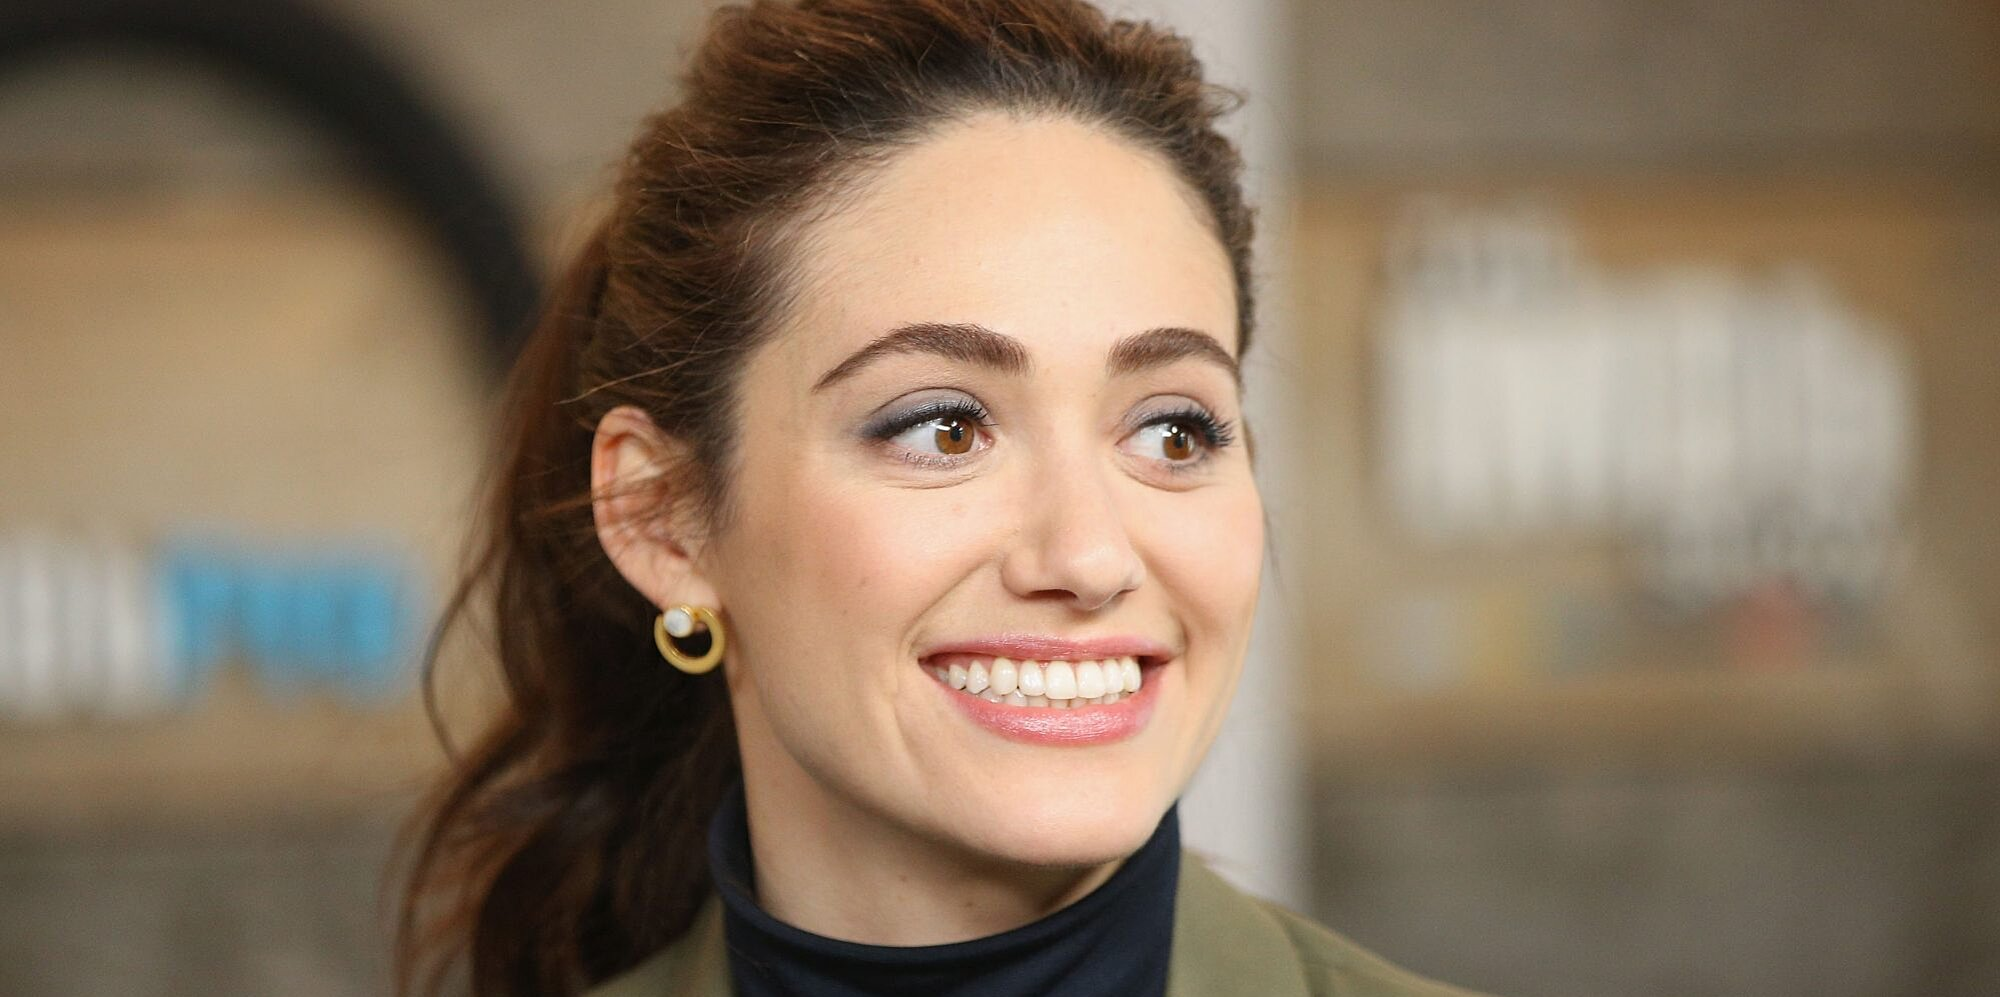 Emmy Rossum Just Shared the First Photo of Her Baby Daughter for a Powerful Reason